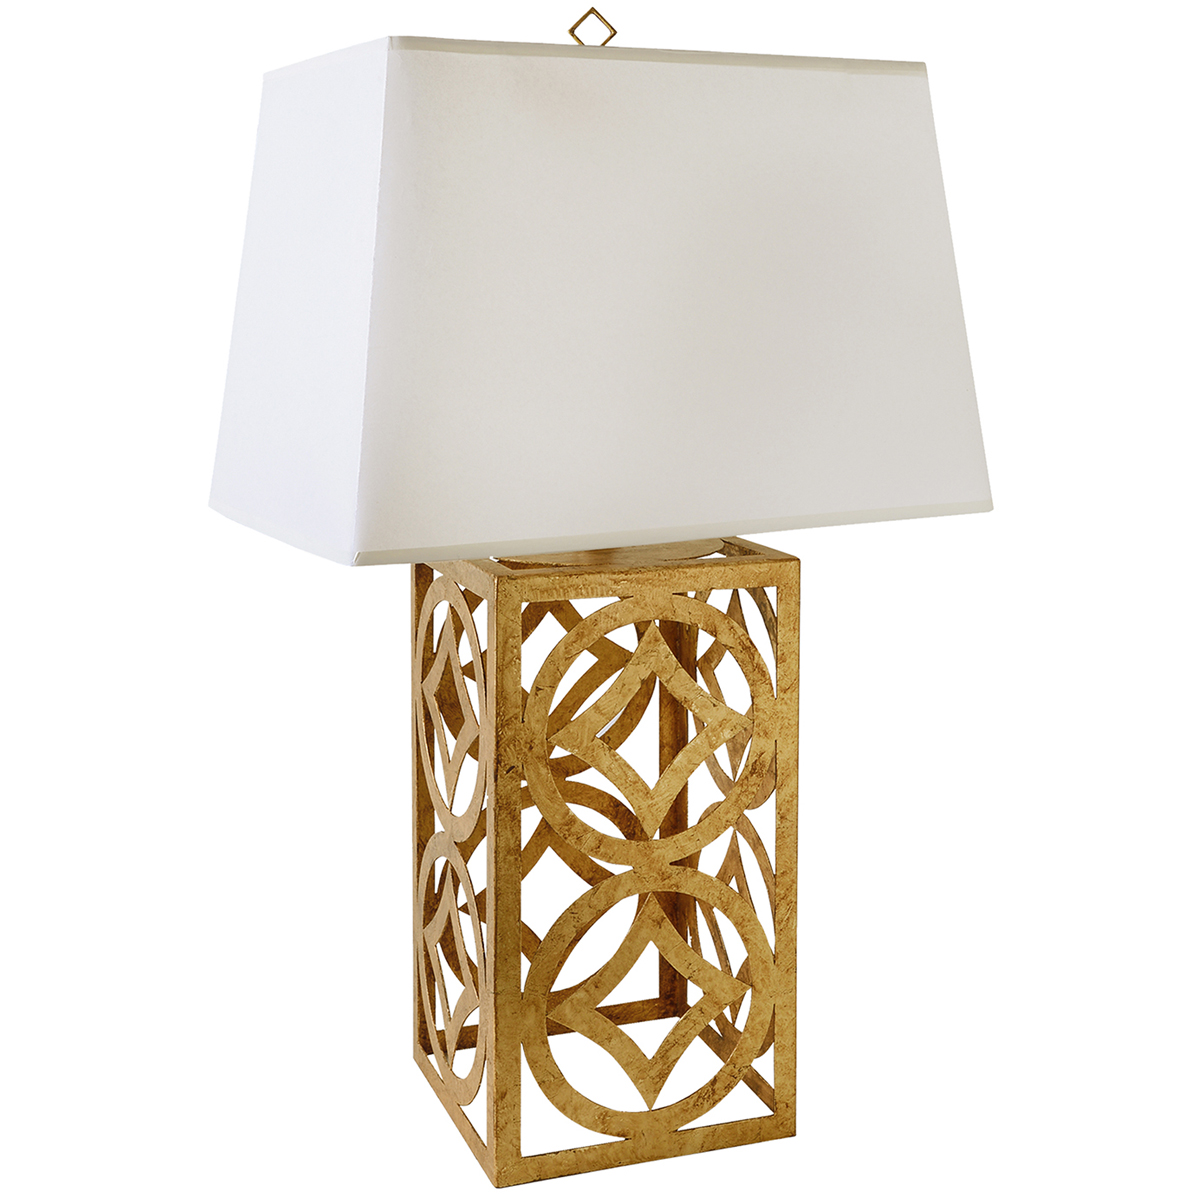 Gilded Nola TLM-1032 Lee Circle Table Lamp